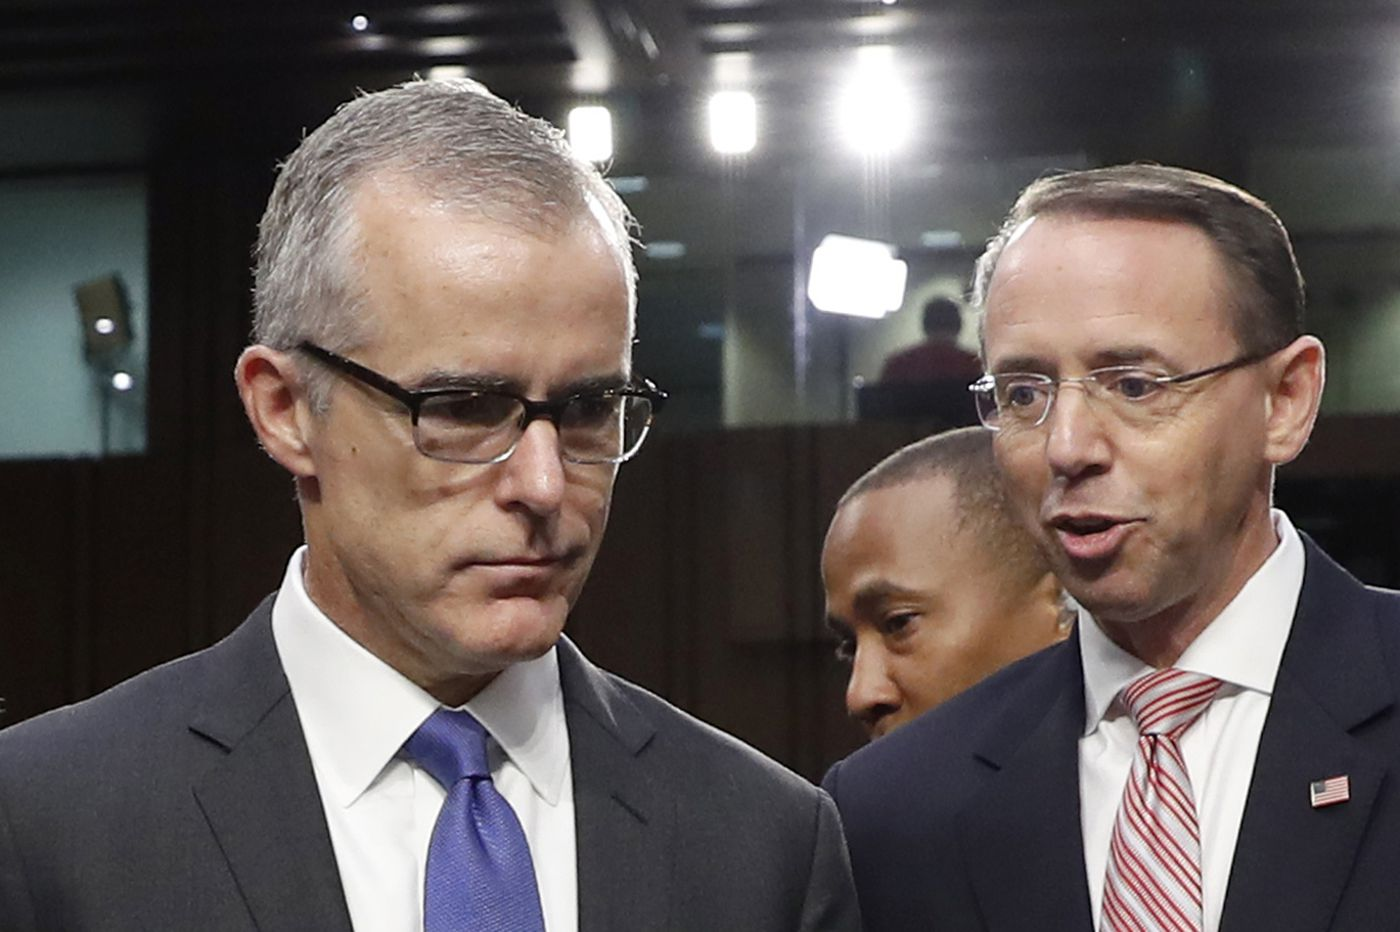 Ex-FBI acting director Andrew McCabe: Discussions were serious about removing Trump from office